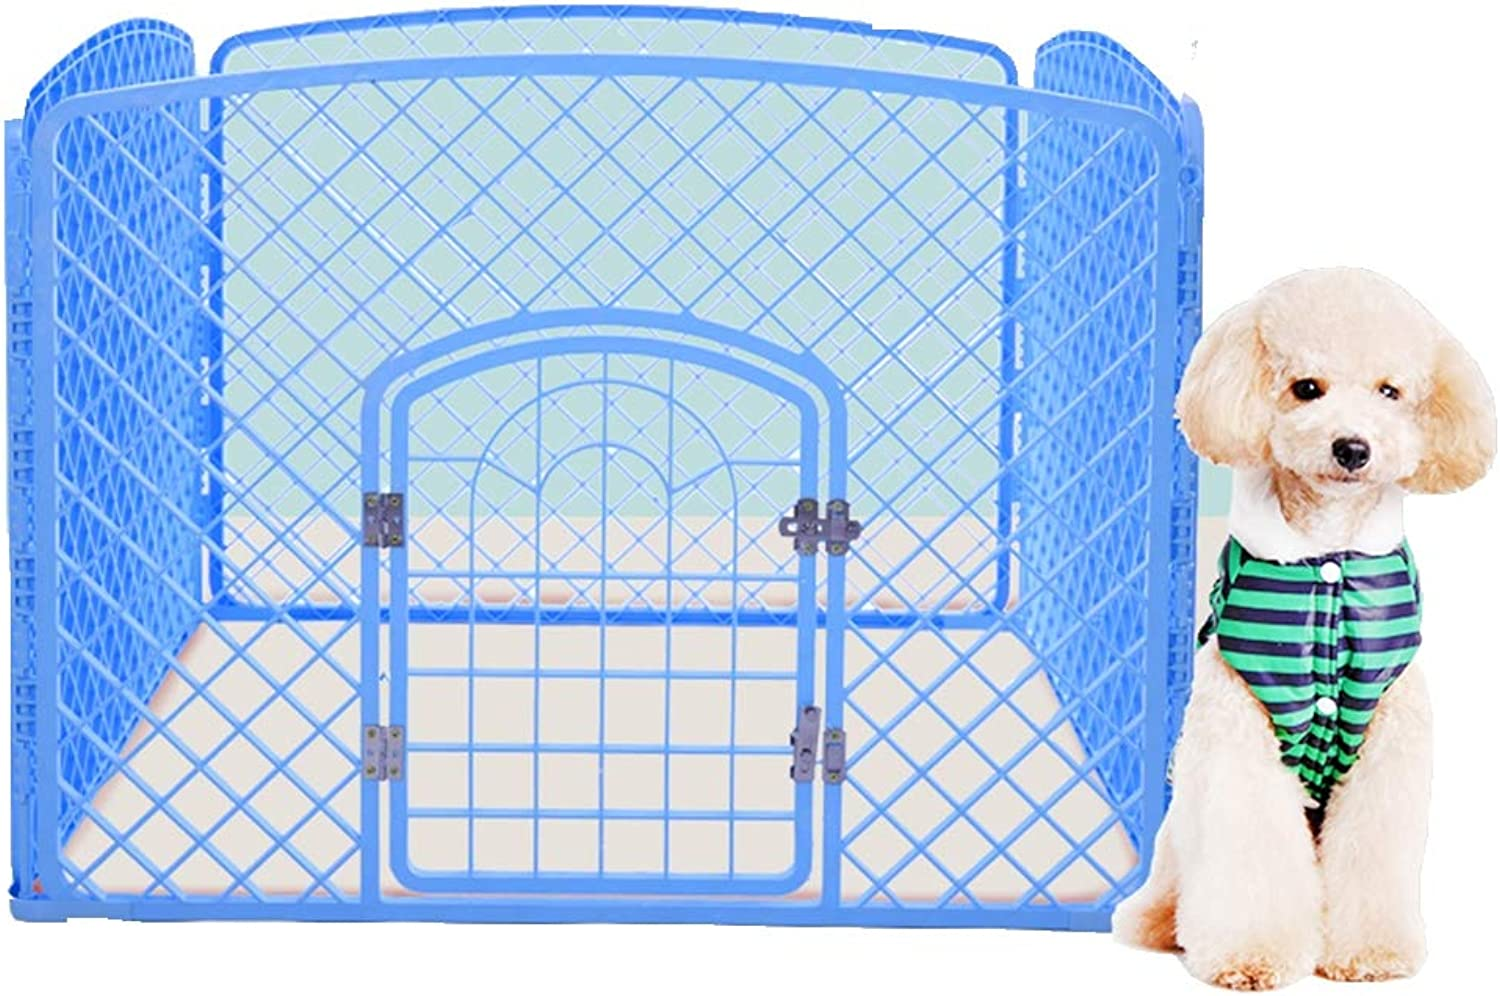 Aida Bz Pet dog pen fence indoor fence dog cage large and medium dog rabbit dog cage cat cage height 76cm,bluee,100cm